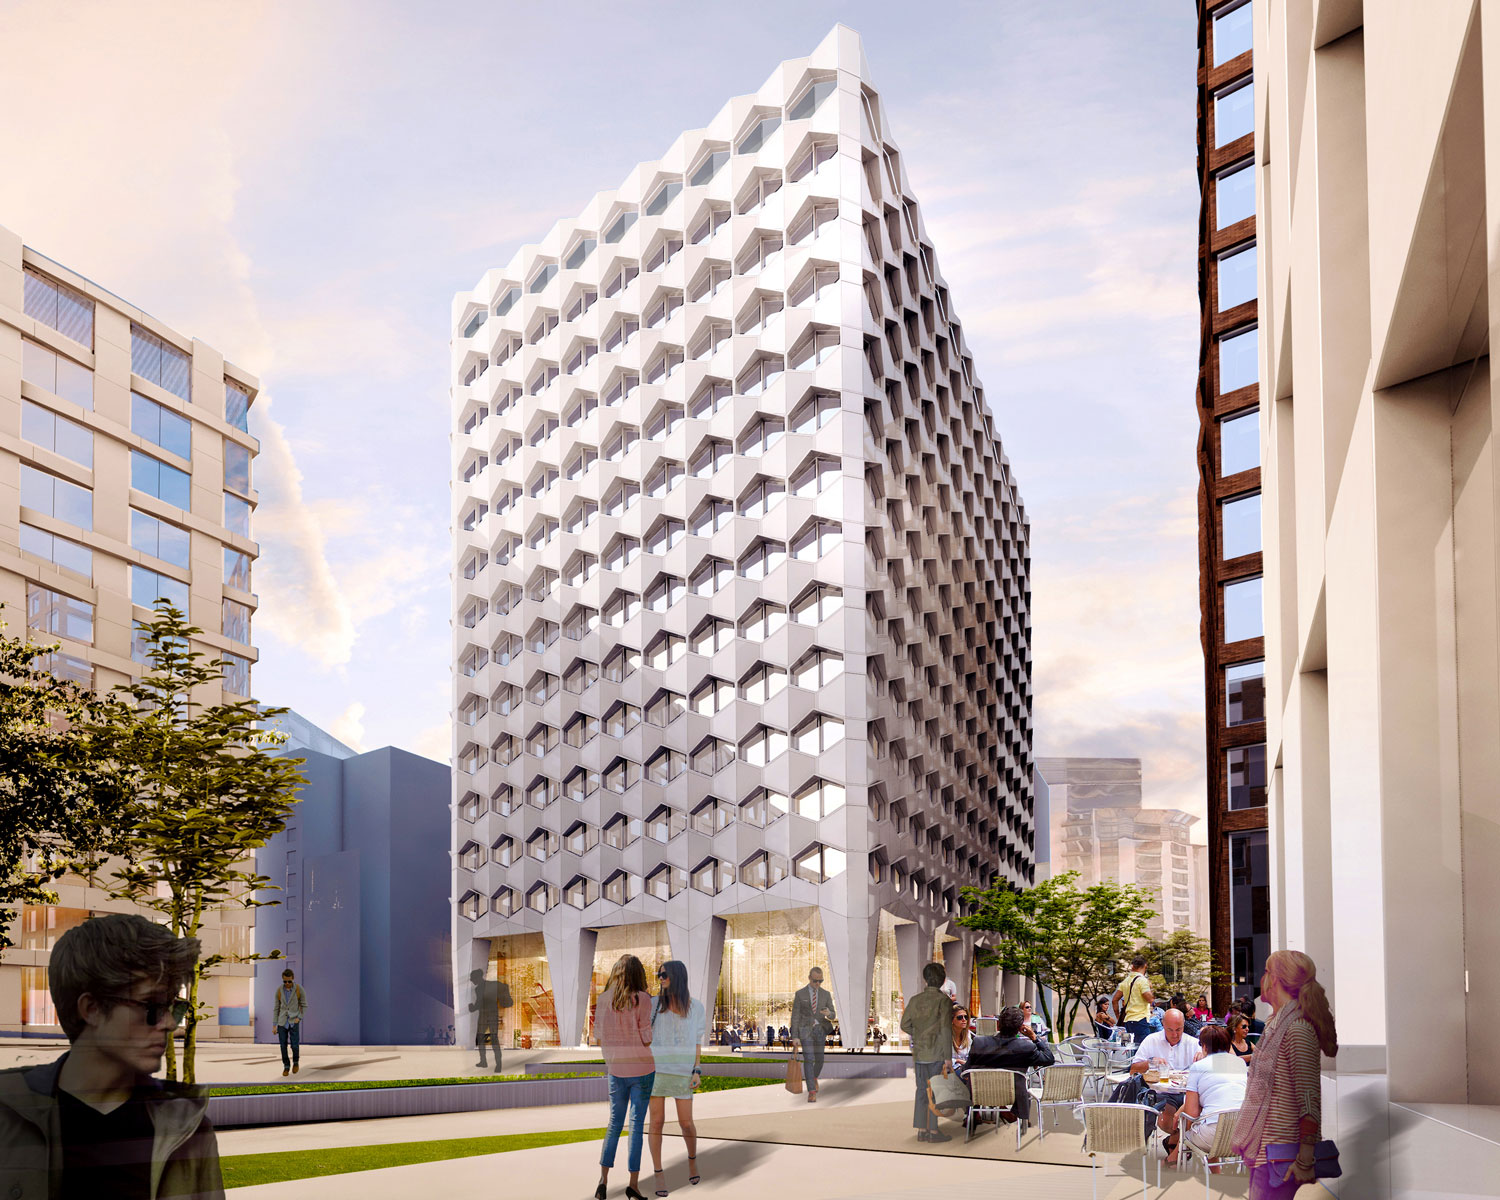 A public square containing a building with a hexagonal pattern, CGI